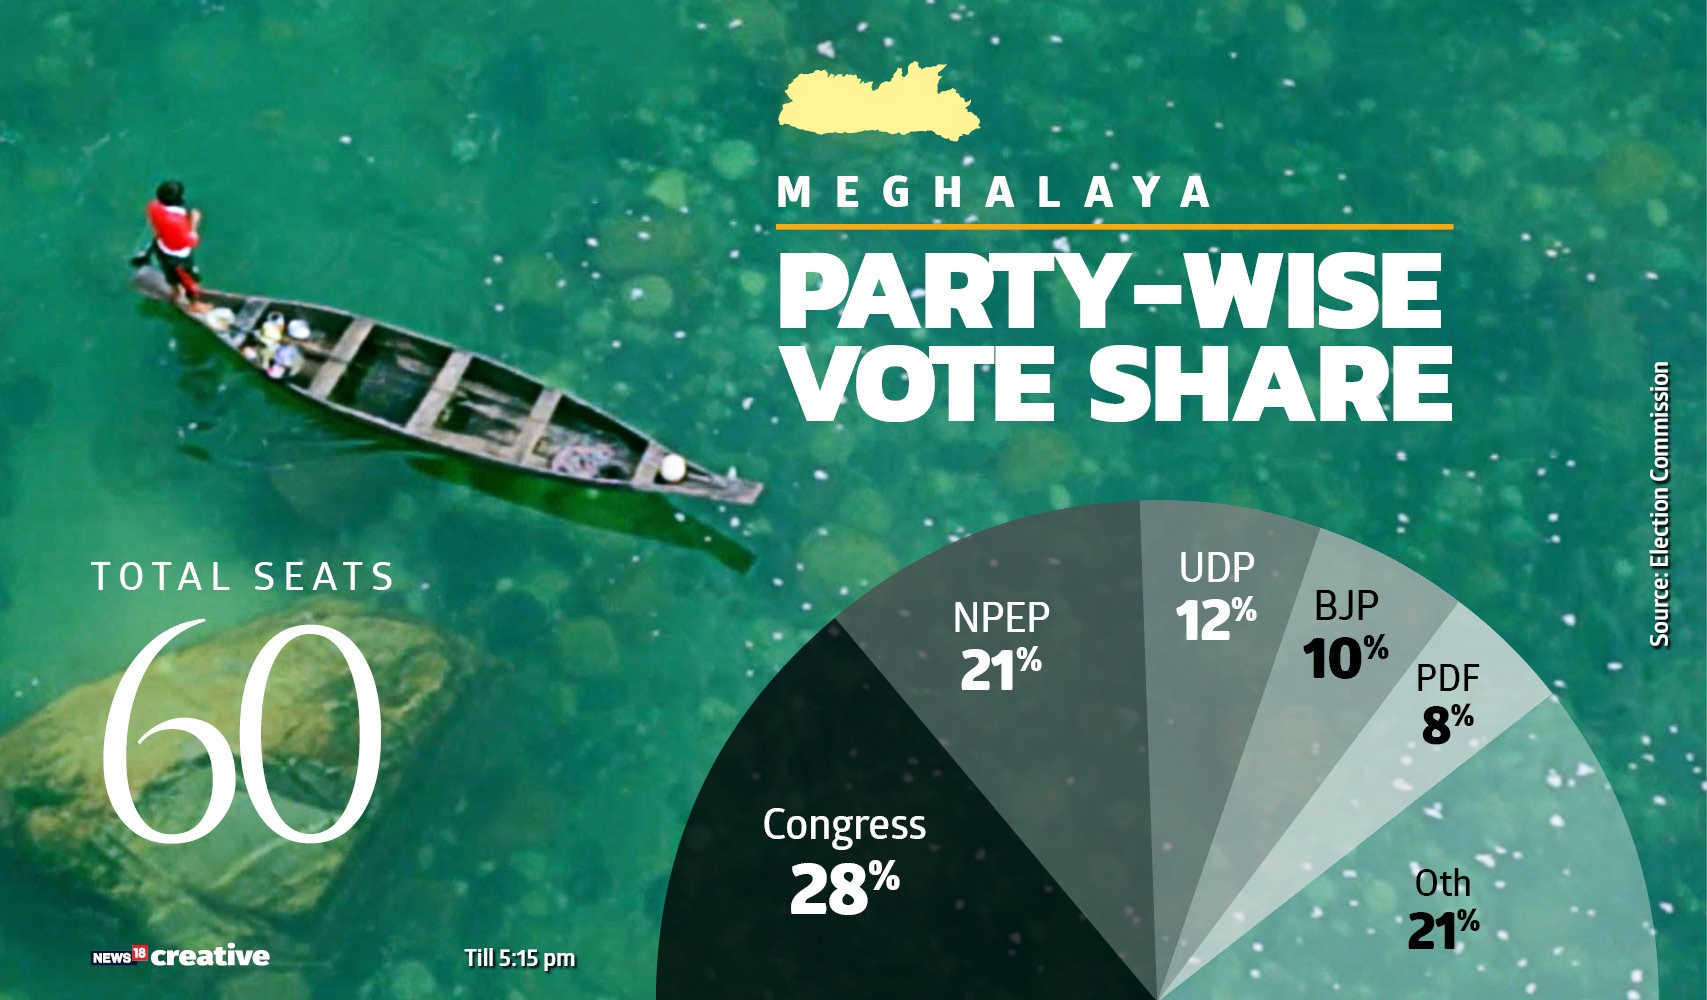 18:08                                      Party-wise vote share in Meghalaya